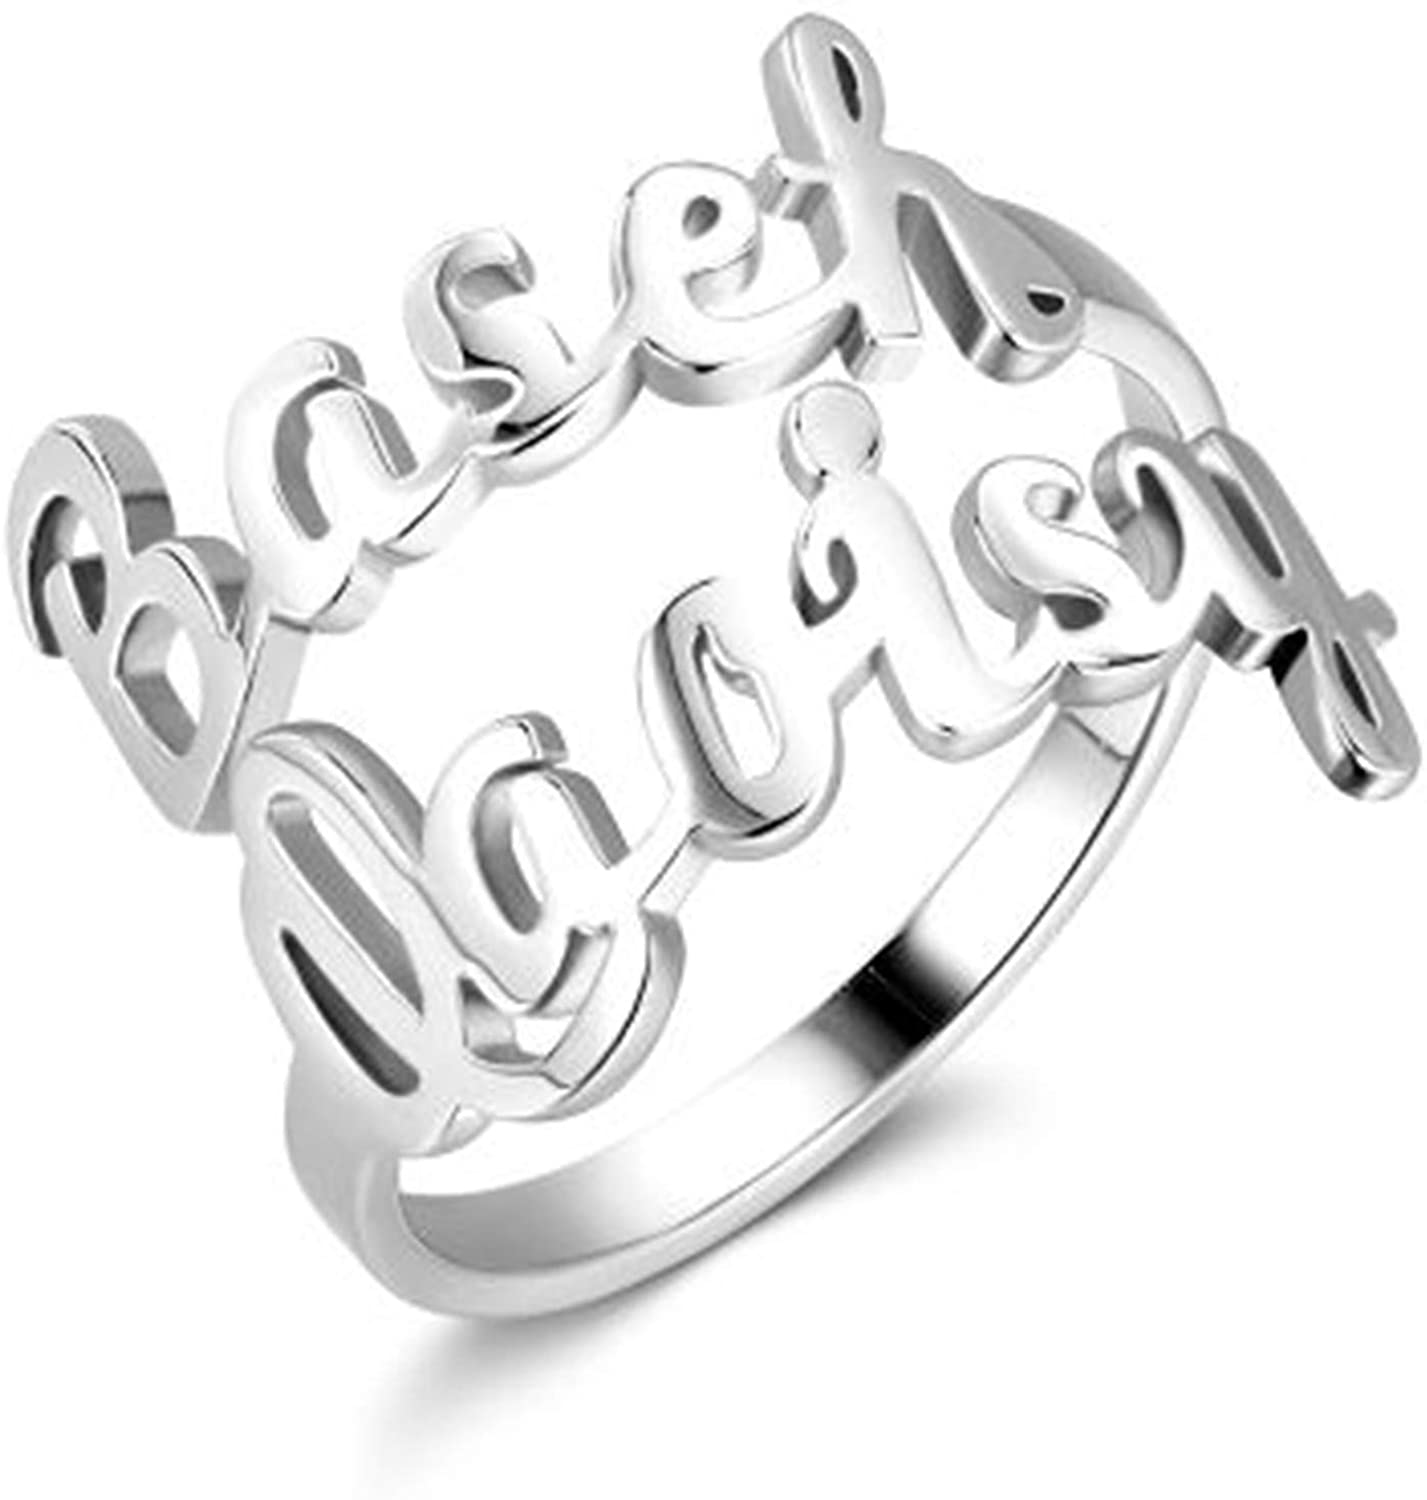 Camilaklein Personalized Name Ring Engrave Name Plate Stacking Ring Customize Two Names Promise Ring for Women Girls Men